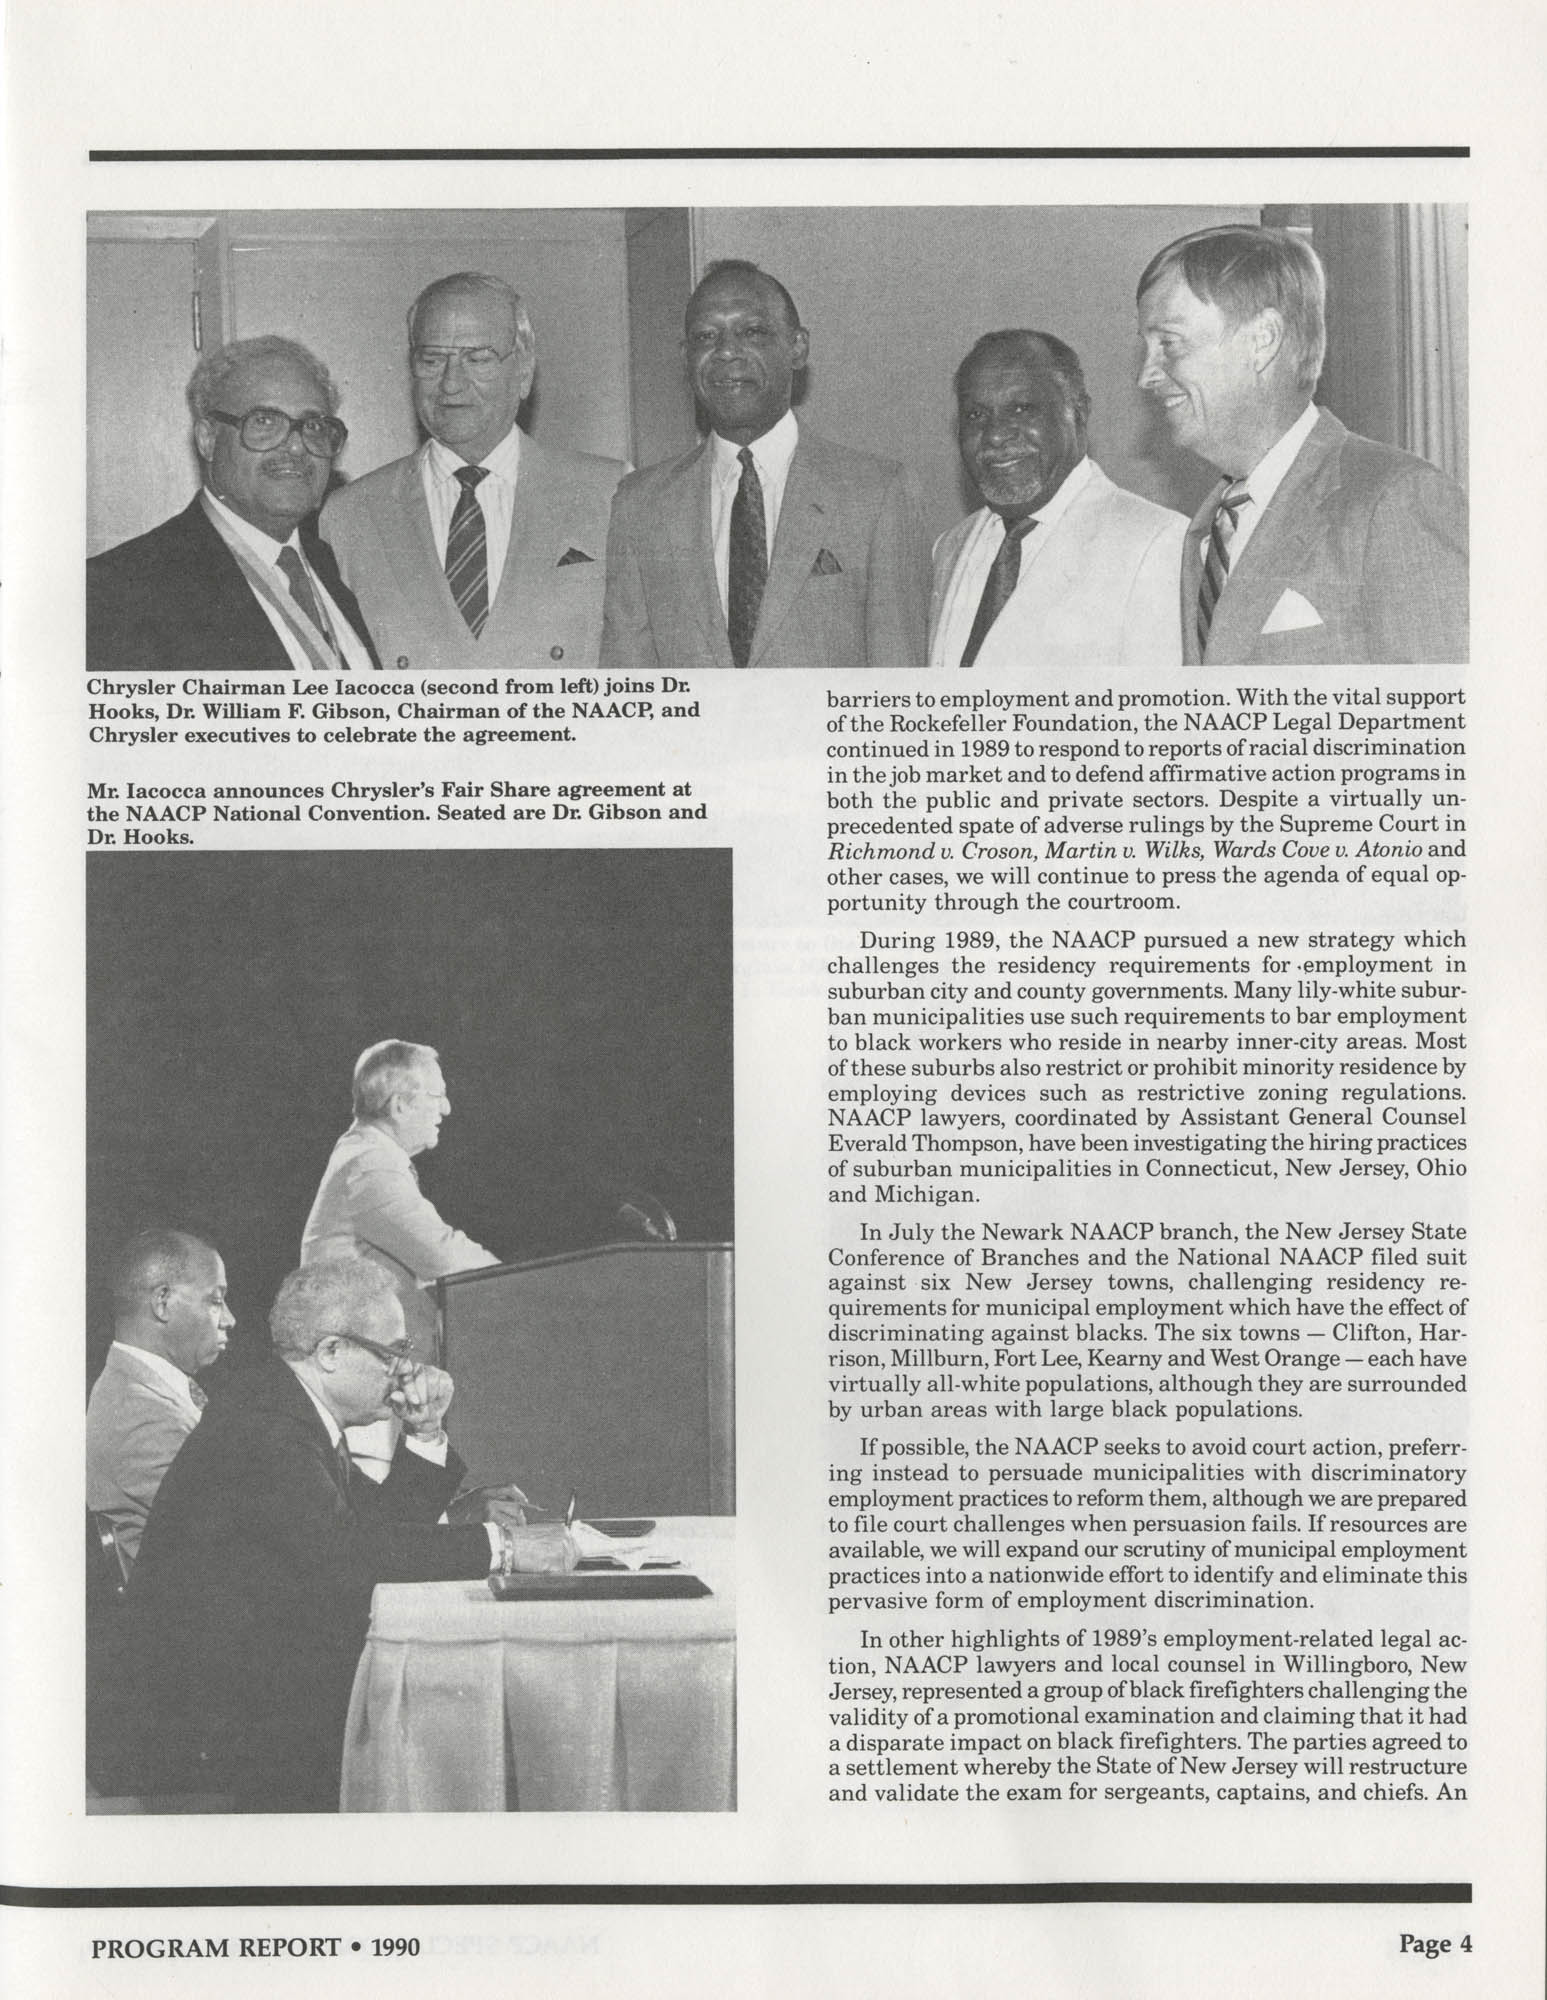 Program Report 1990, Special Contribution Fund, NAACP, Page 4